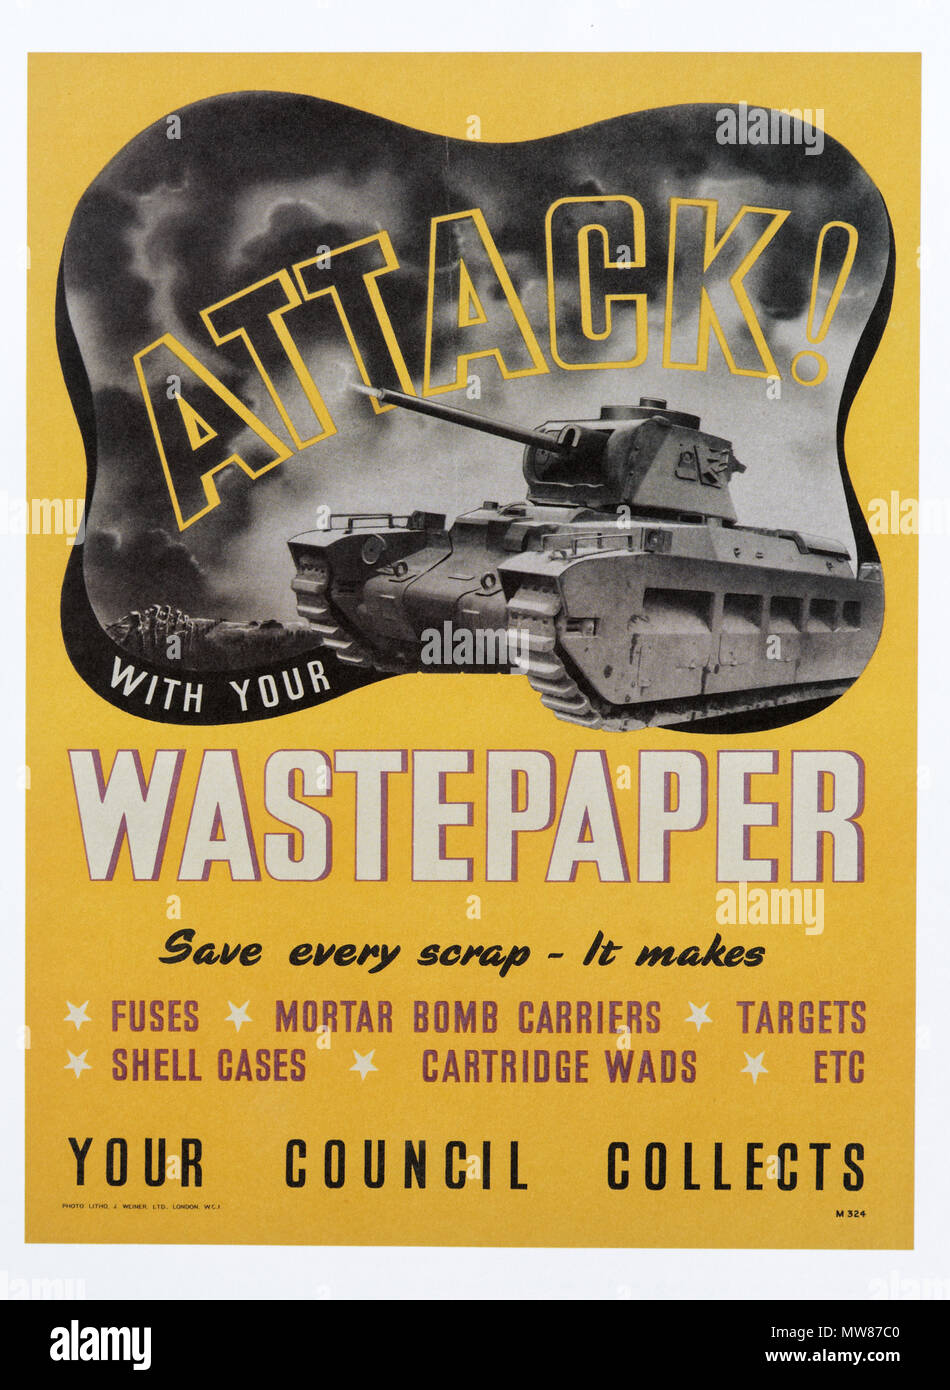 A Second World War poster promoting the salvage, and recycling of waste paper - Attack with your Wastepaper - Stock Image